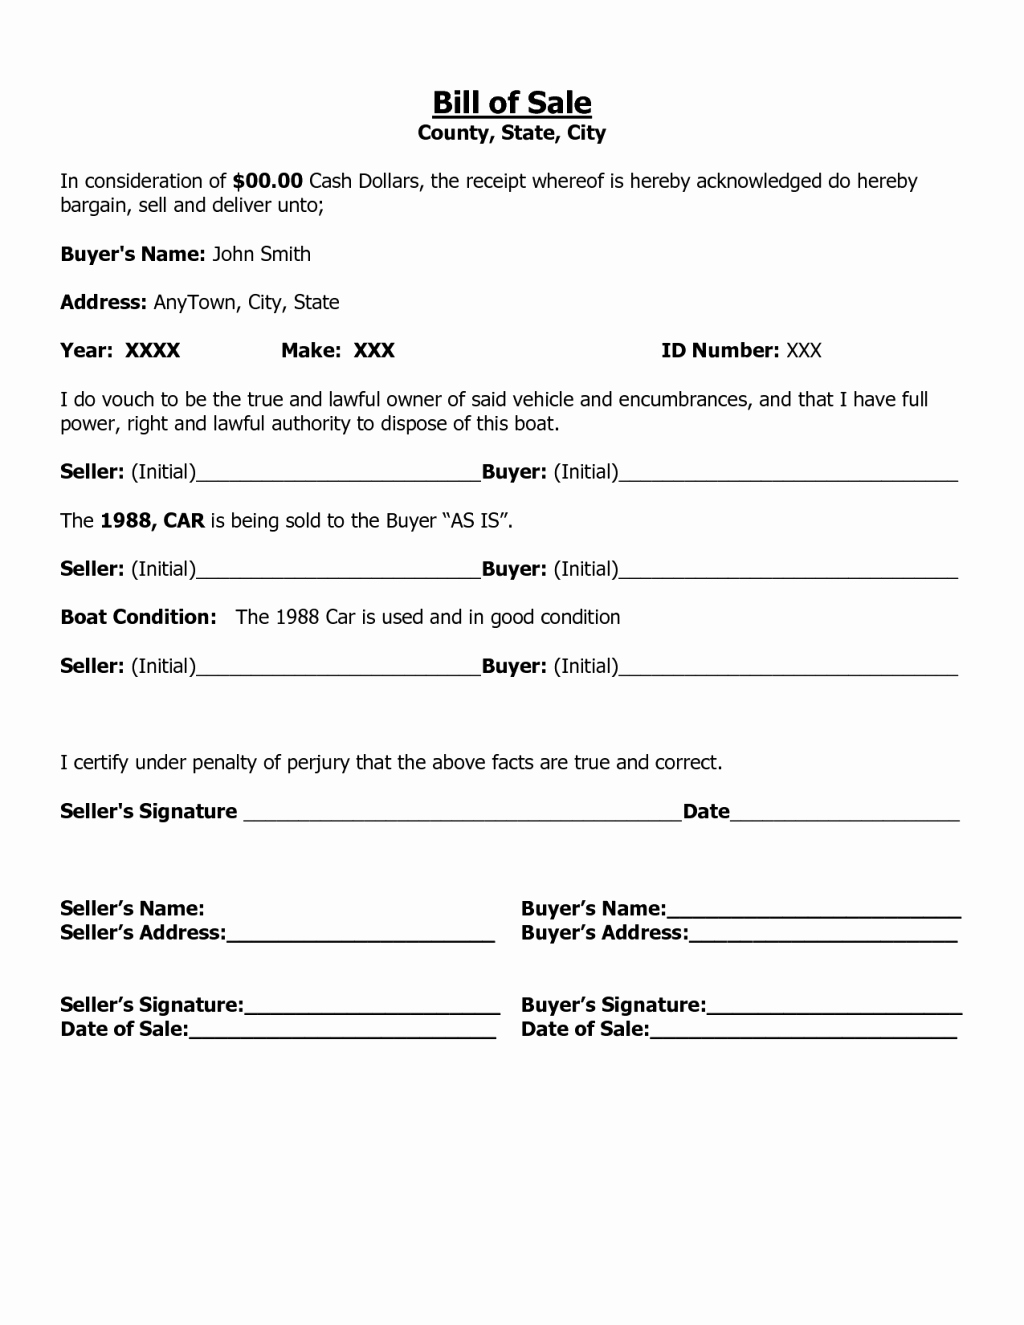 Bill Of Sale format Sample Fresh Bill Sale Sample Document Free Blank Invoice form